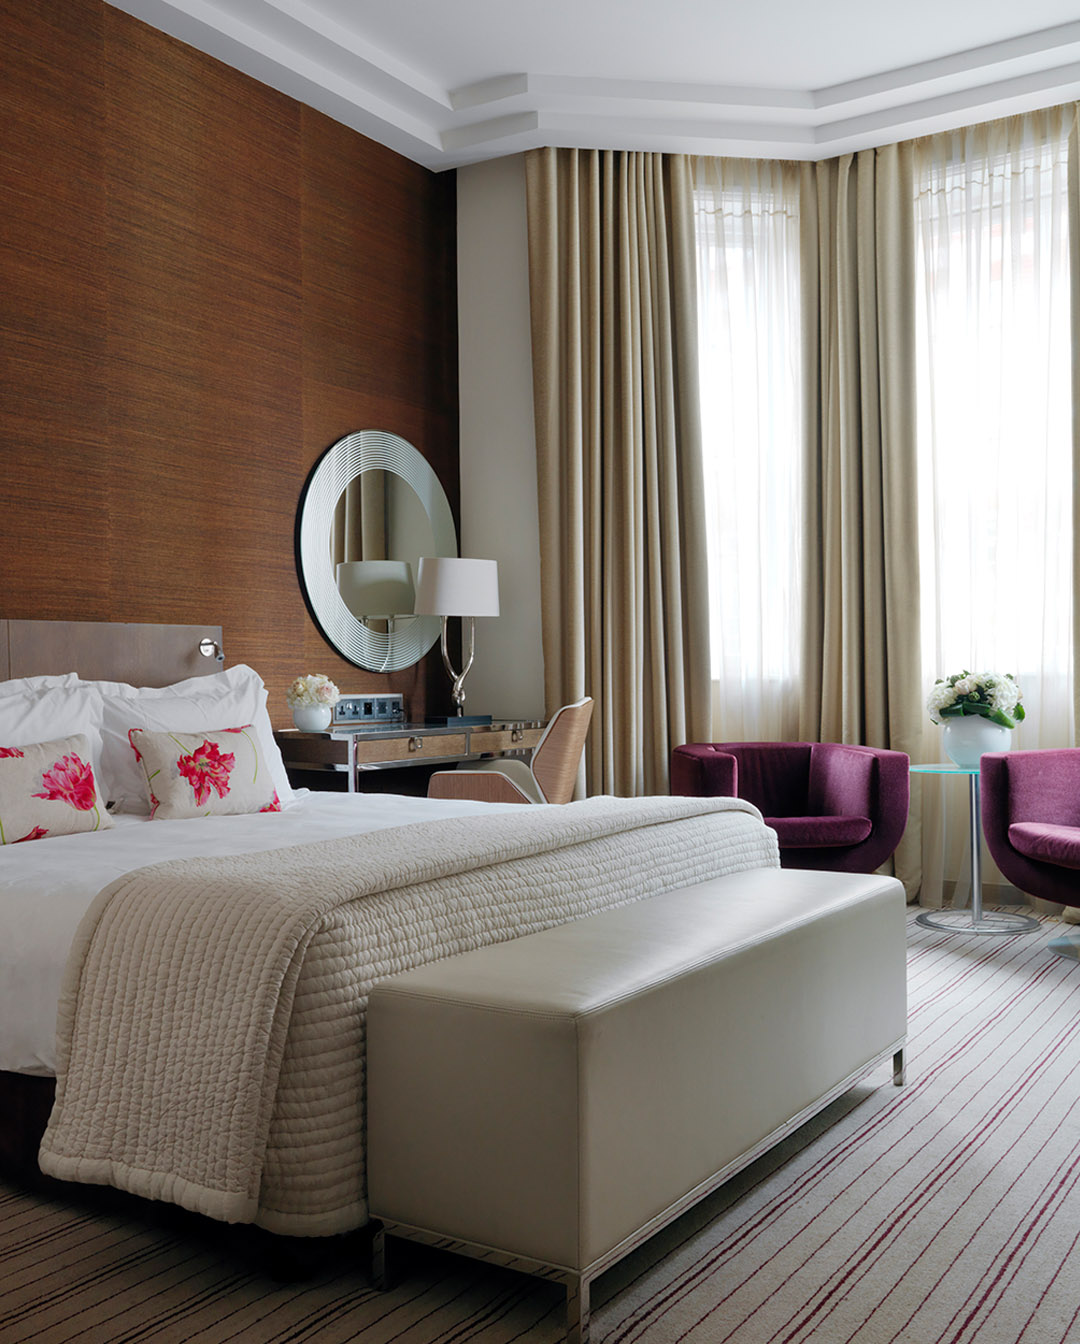 Deluxe King Room In Central London The Marylebone Hotel